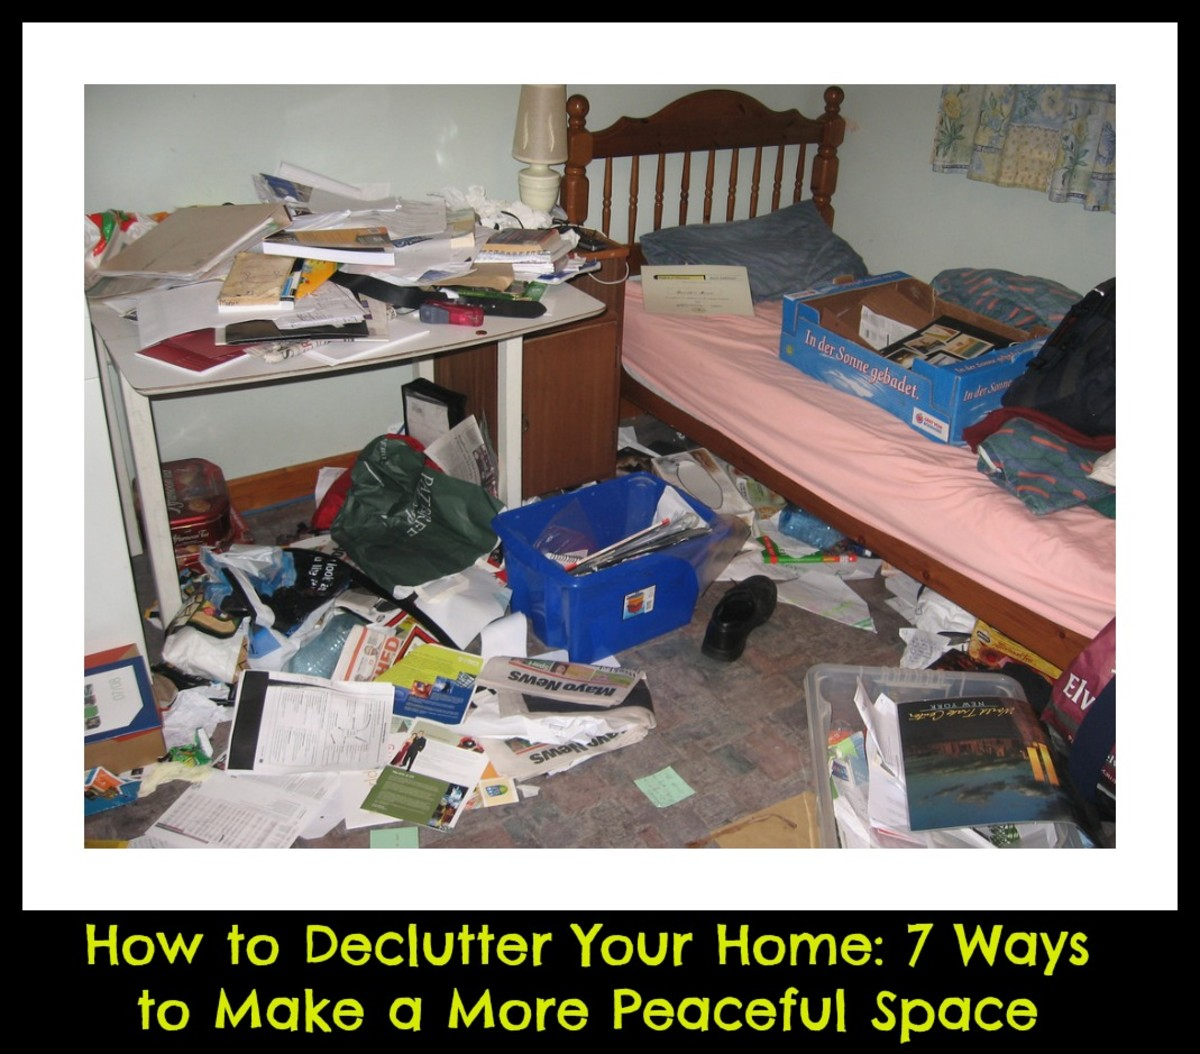 How to Declutter Your Home and Make It a Sanctuary